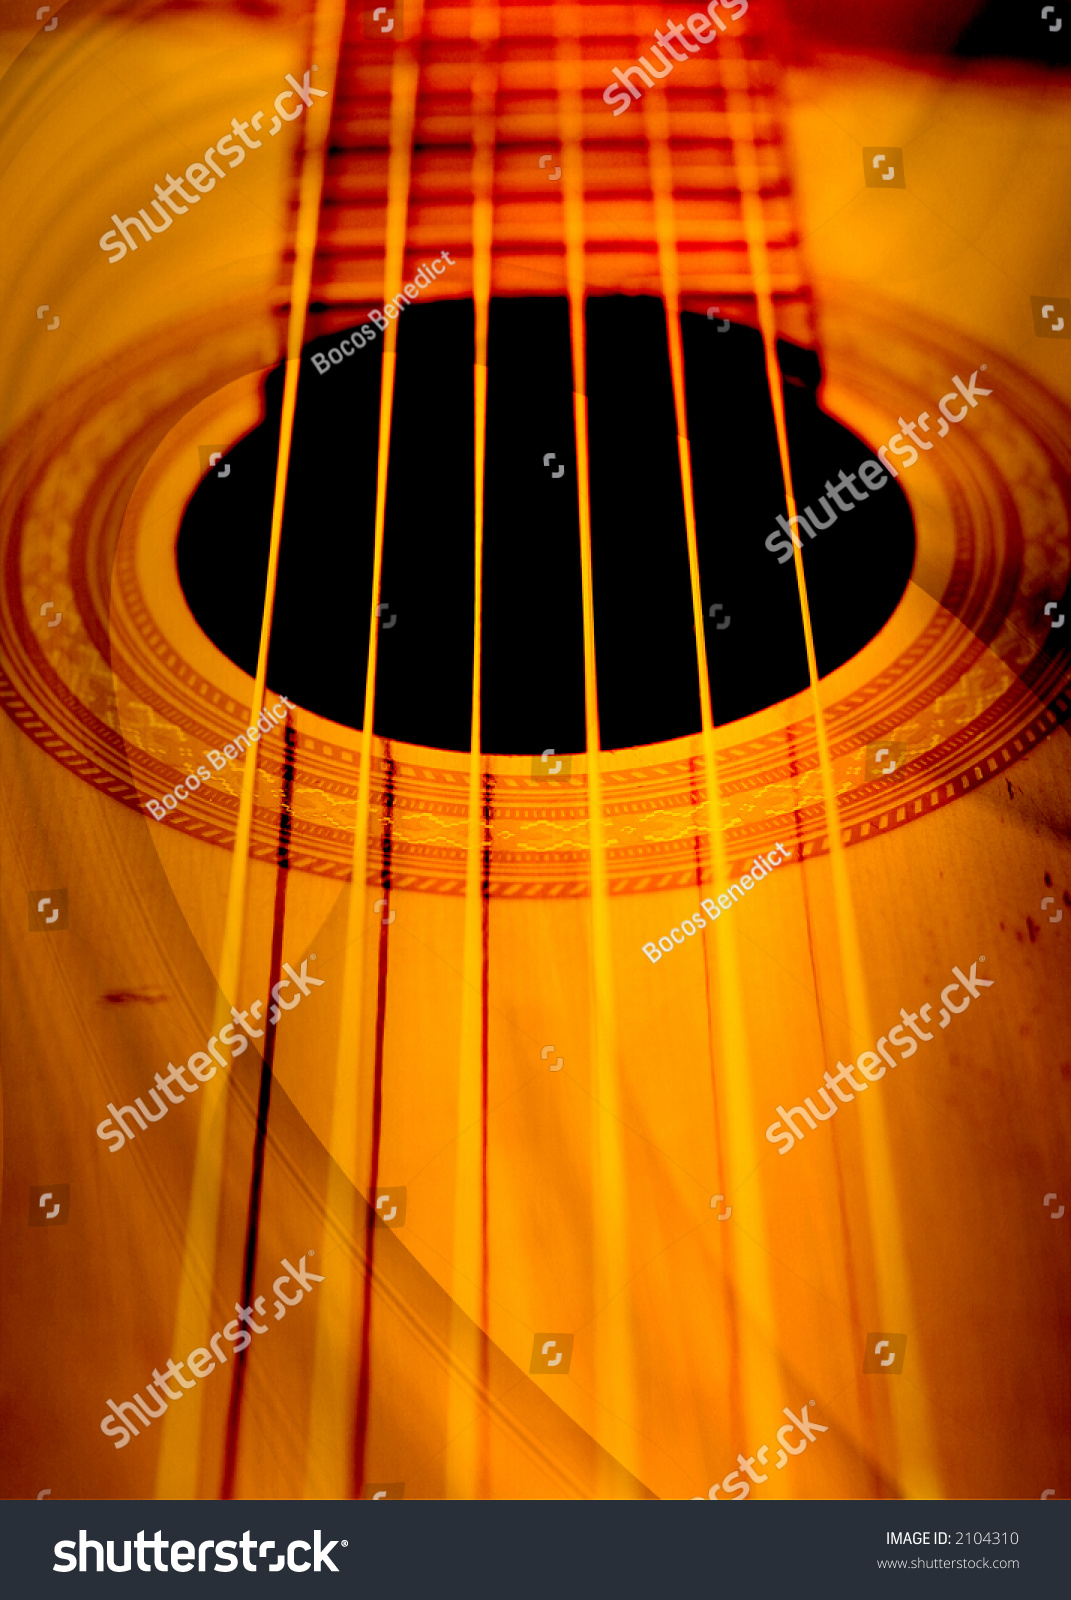 abstract guitar composition stock photo 2104310 shutterstock. Black Bedroom Furniture Sets. Home Design Ideas